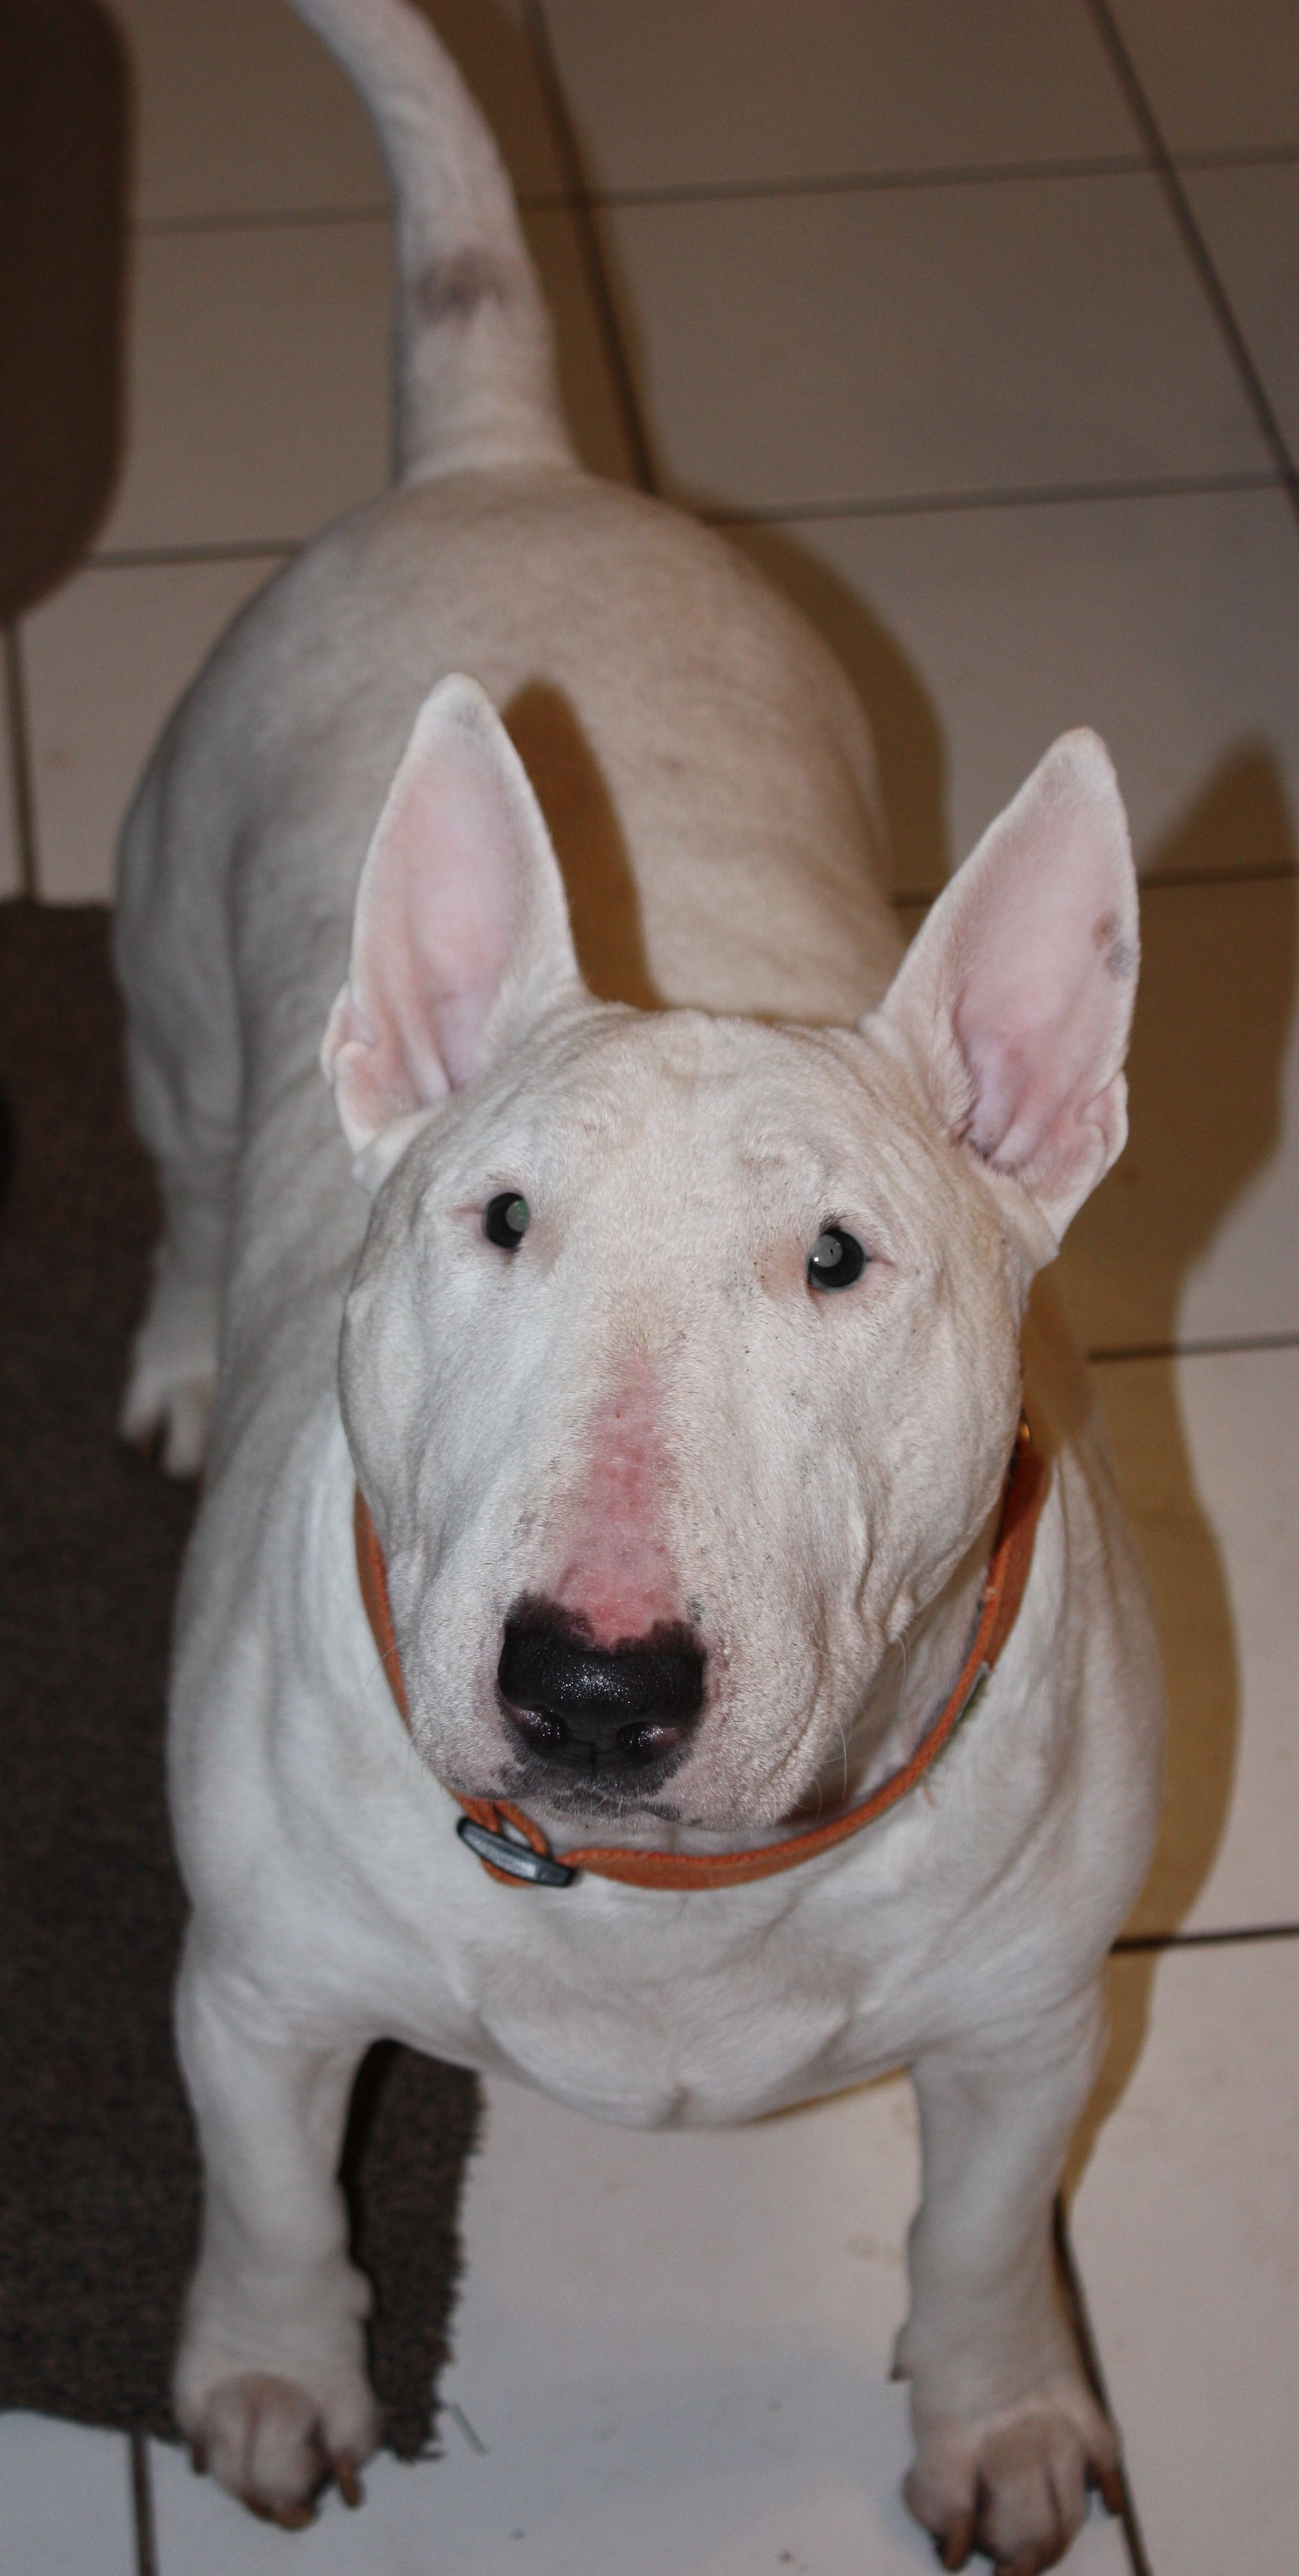 Frankie Bull Terrier For Adoption Aroud 75 Lbs And Needs Some Leash Manners Too But Otherwise He Is A Swee Dog Friends Bull Terrier English Bull Terriers